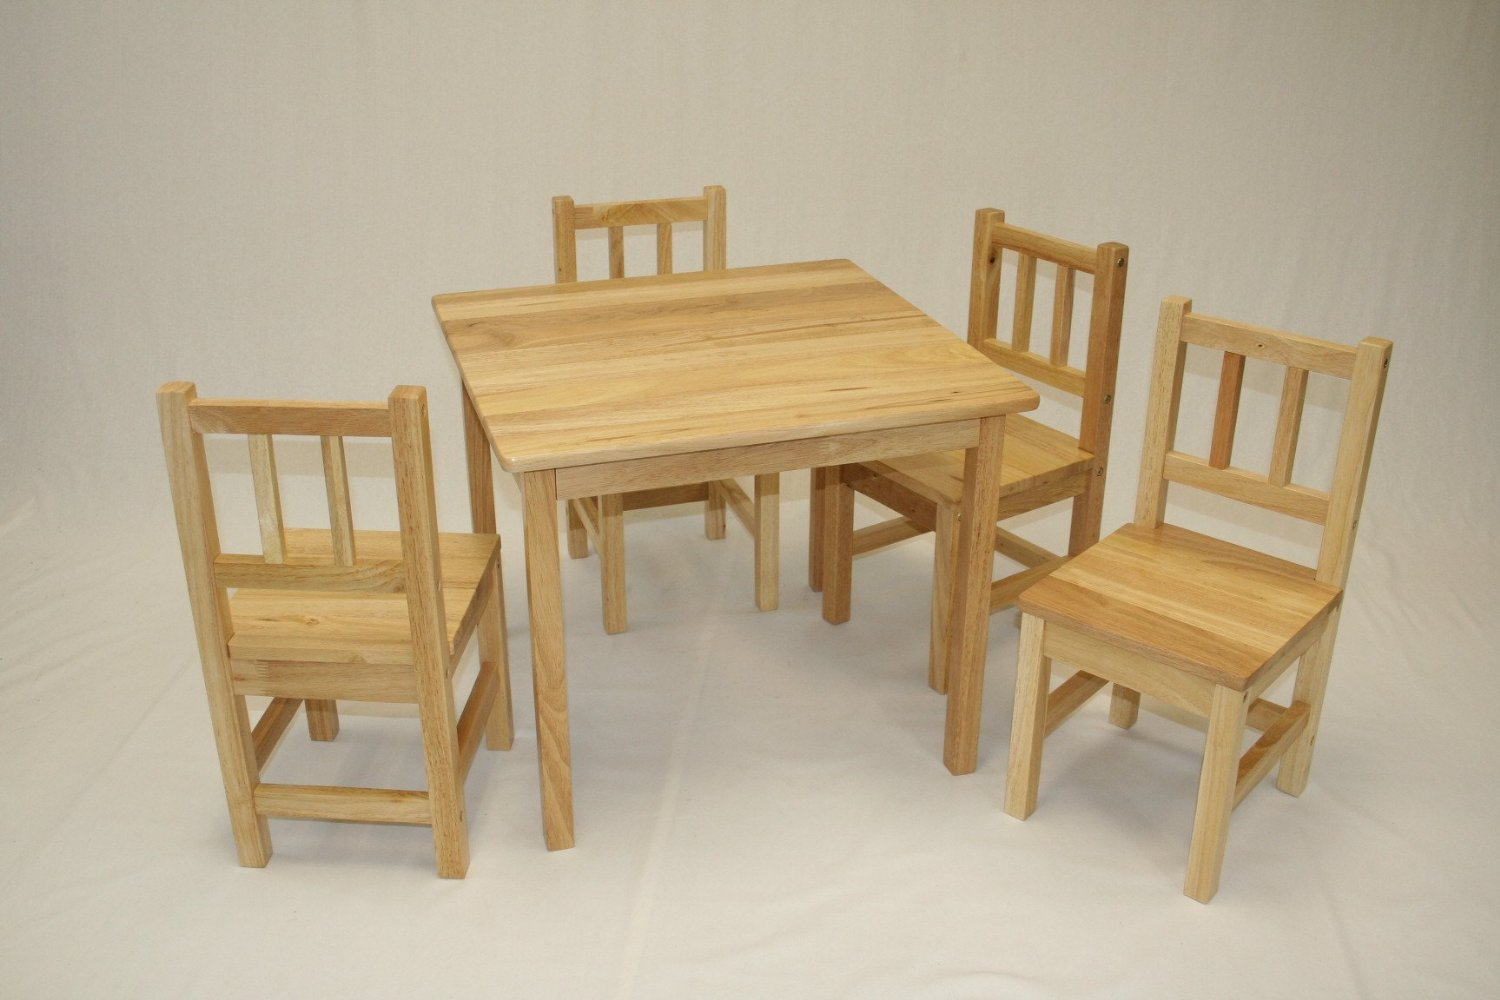 Superieur EHemco 5 Piece Kids Table And Chairs Set Solid Hard Wood (Unfinished)    Walmart.com